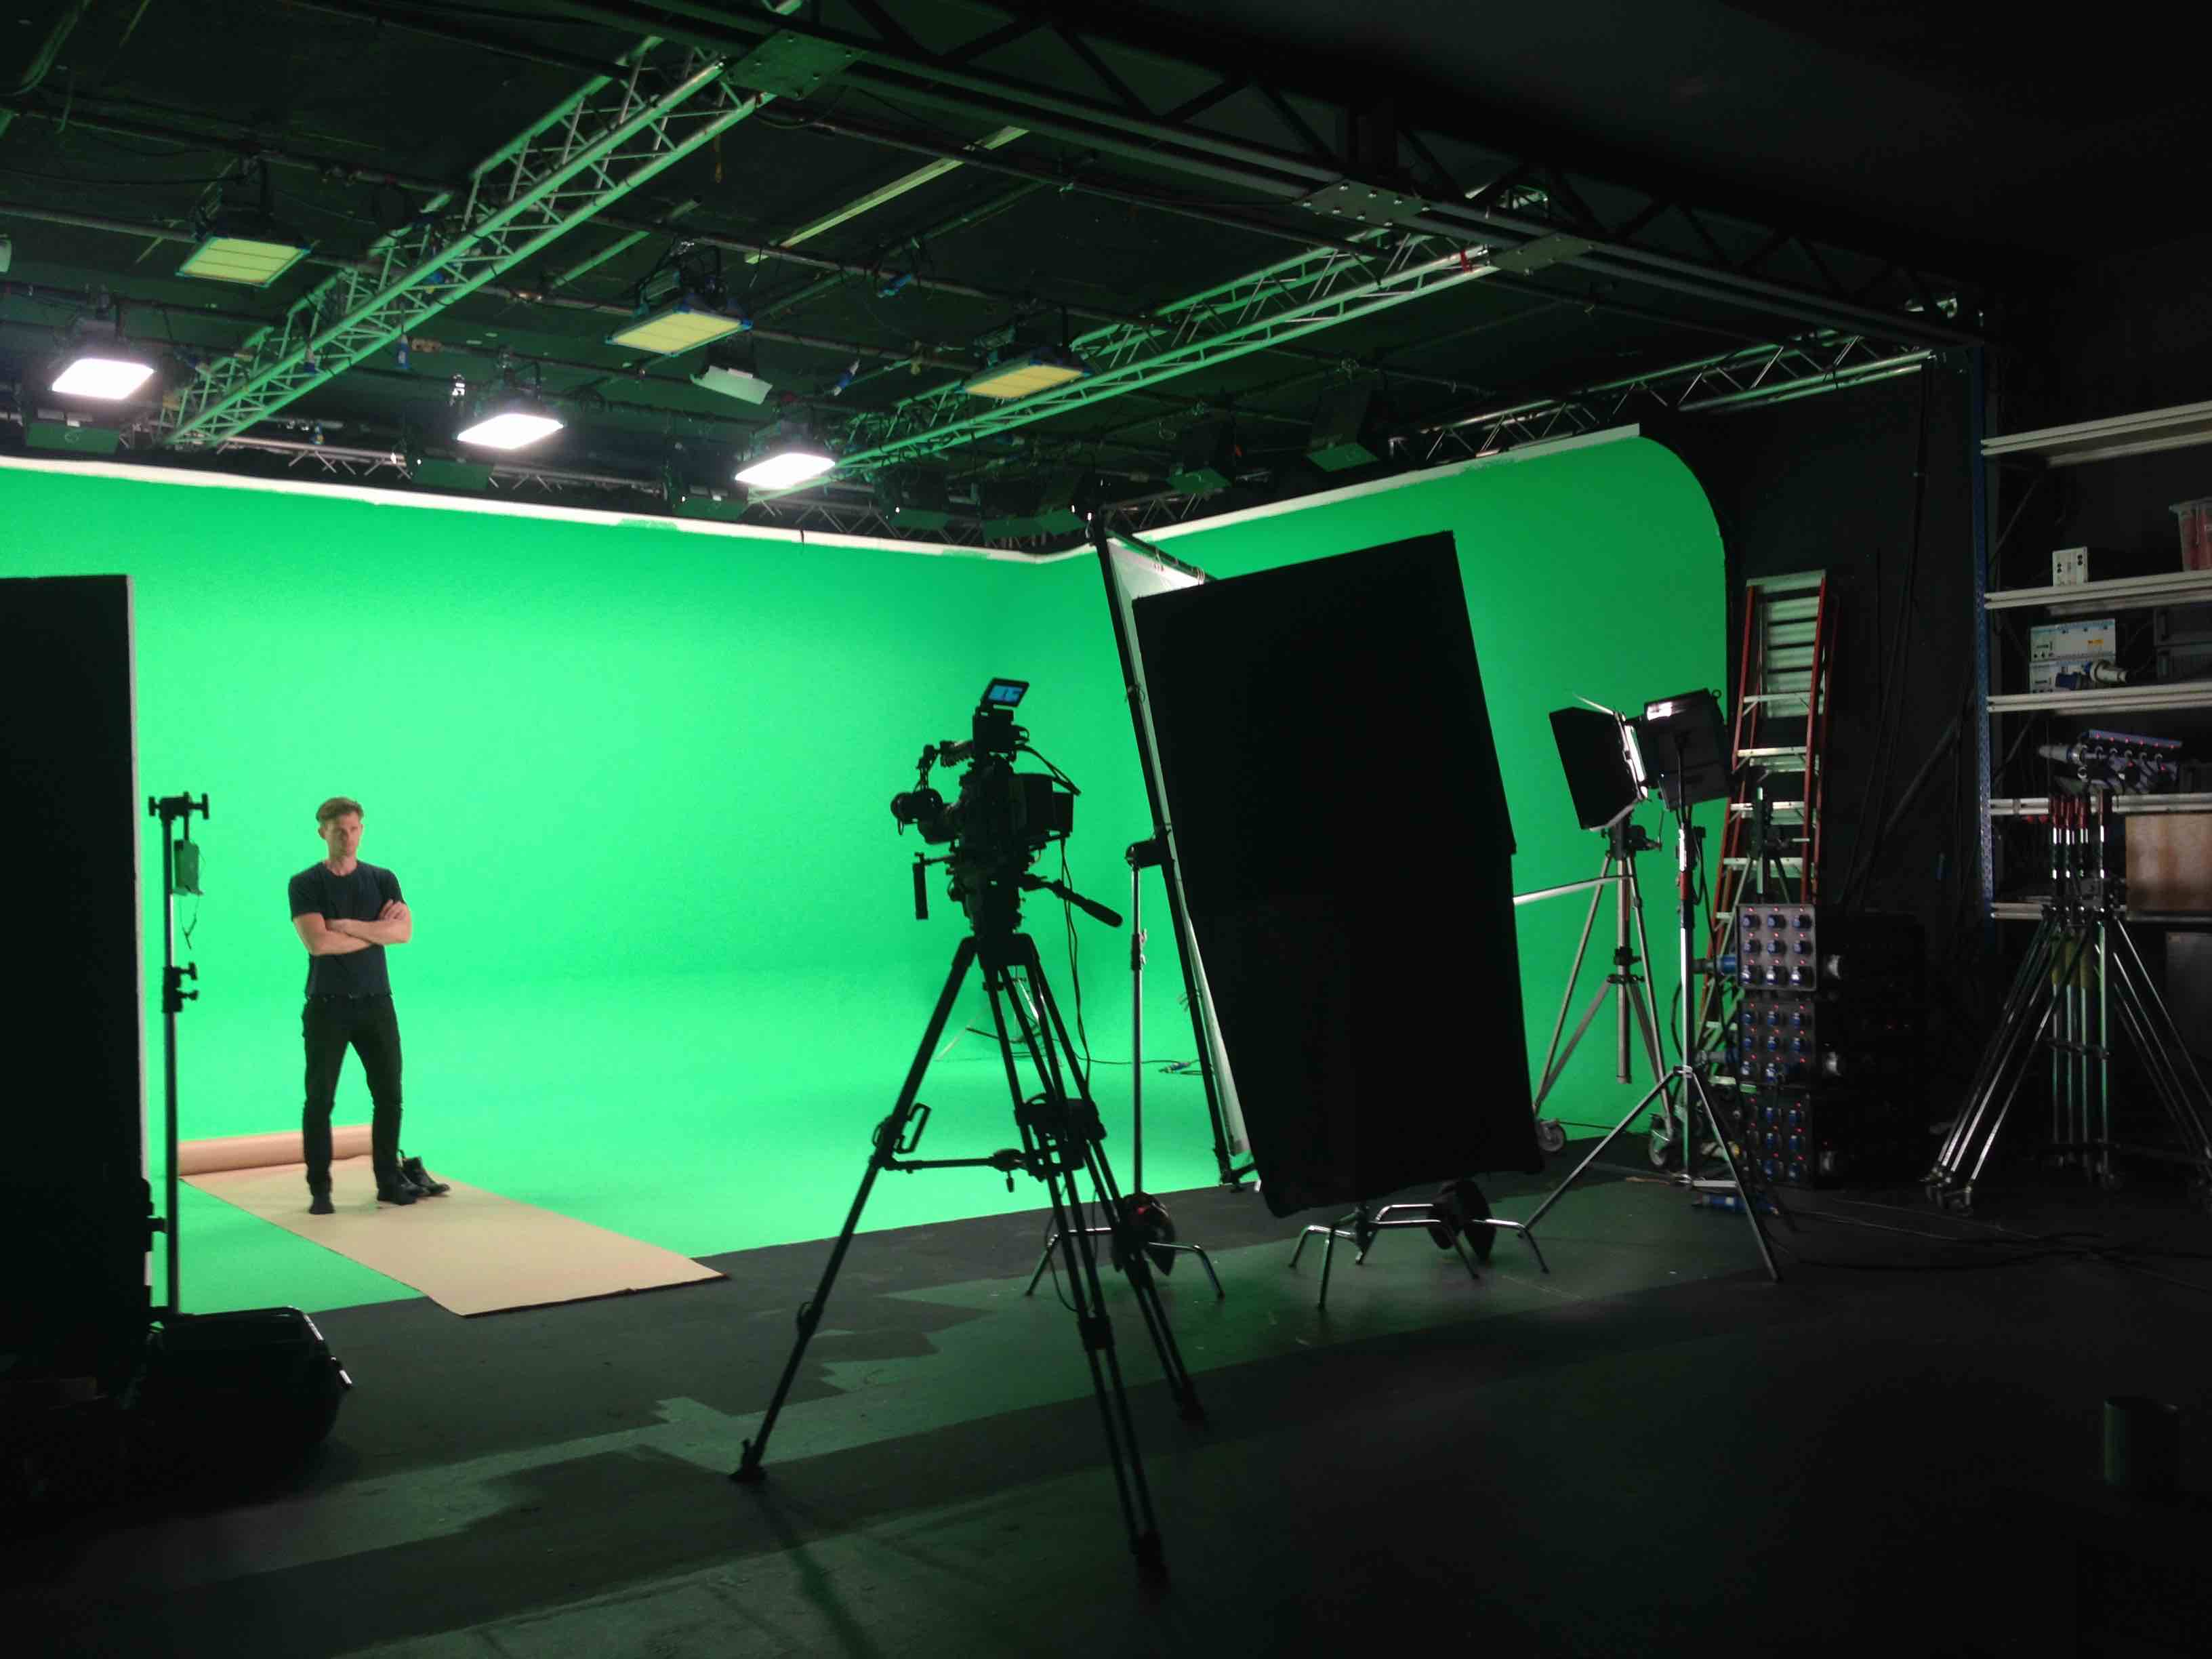 greenscreen lighting setup